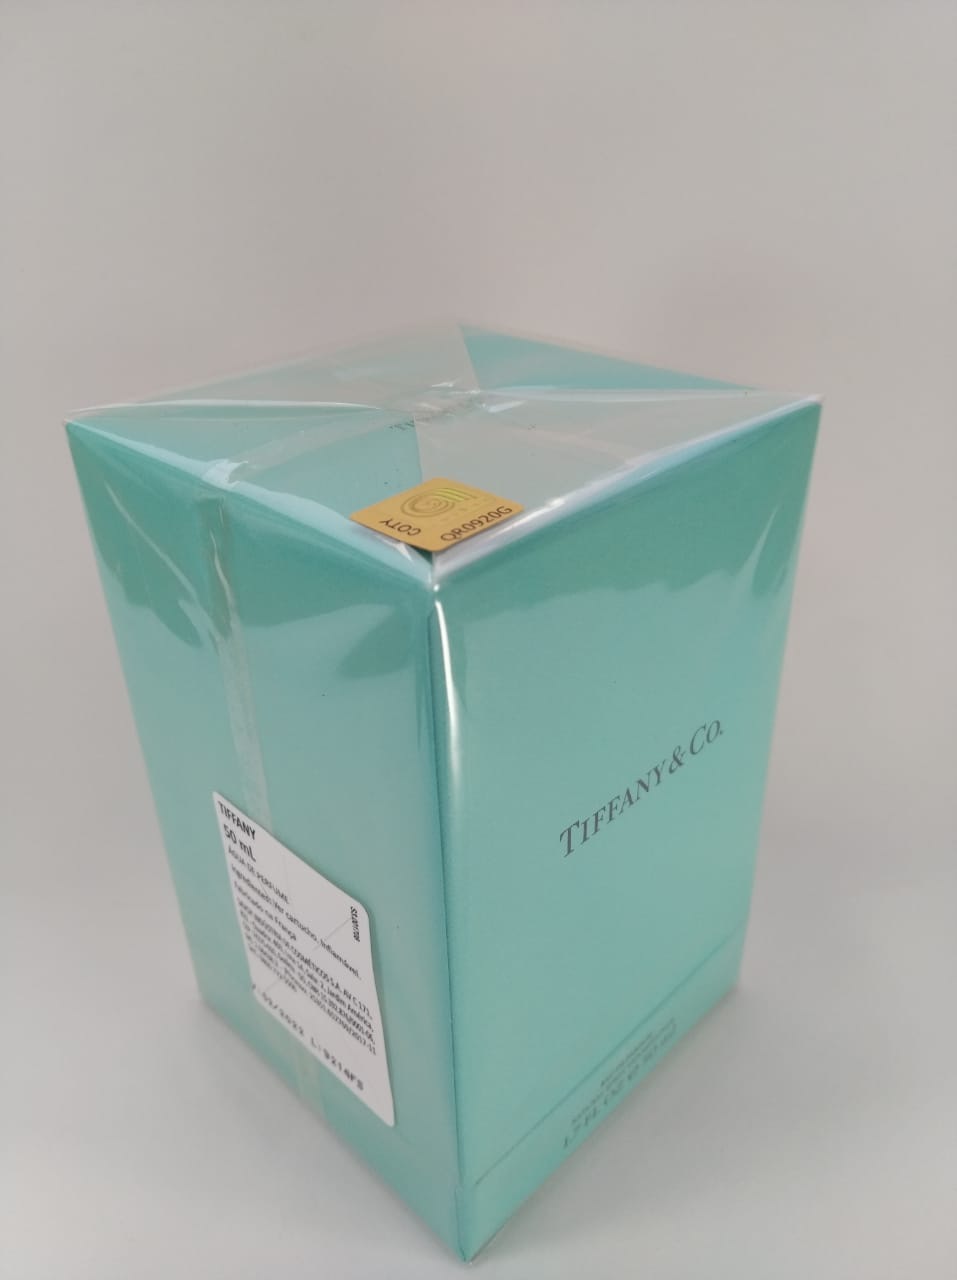 Tiffany & Co Eau de Parfum 50 ml